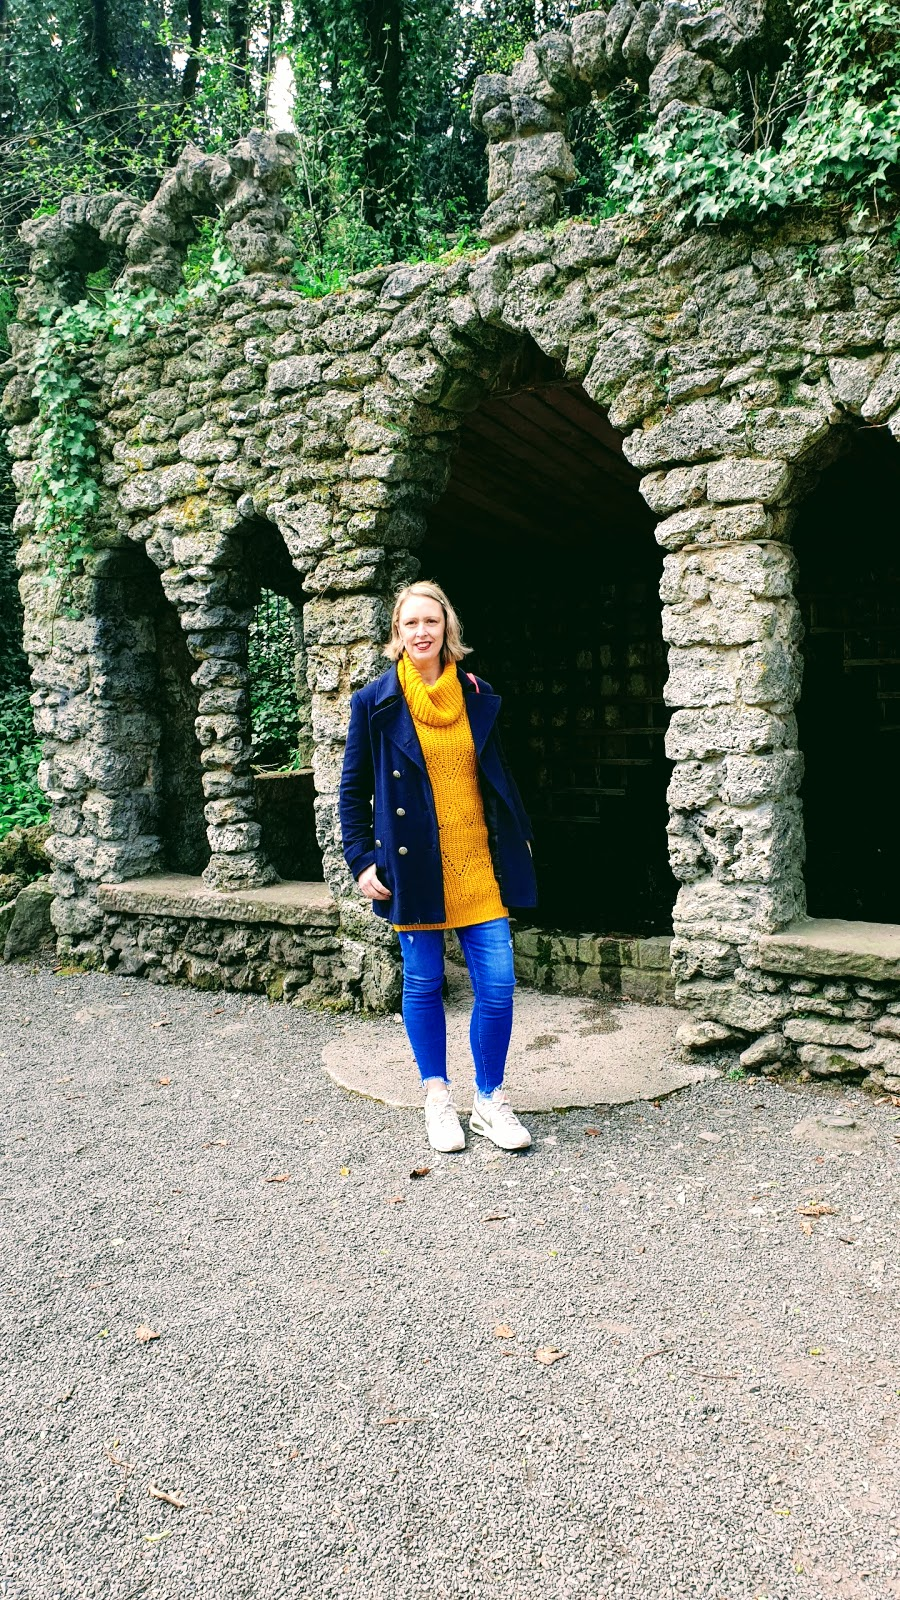 A Walk Around Matlock Baths: Weekend Link Up